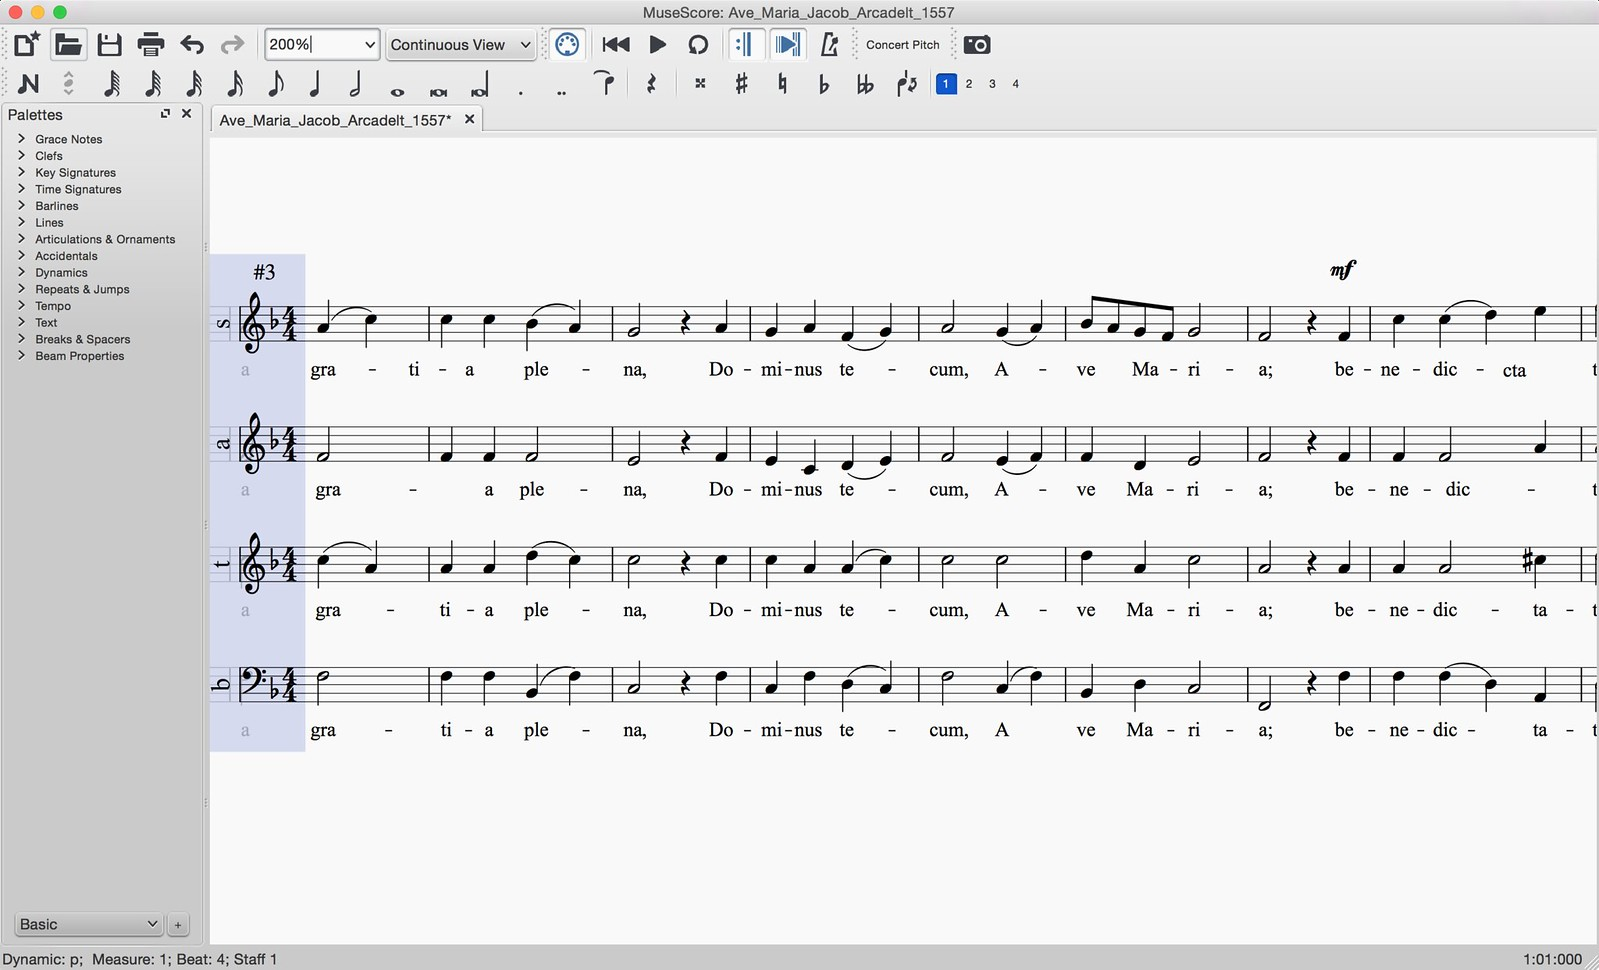 SATB Score in continuous view   MuseScore   Flickr